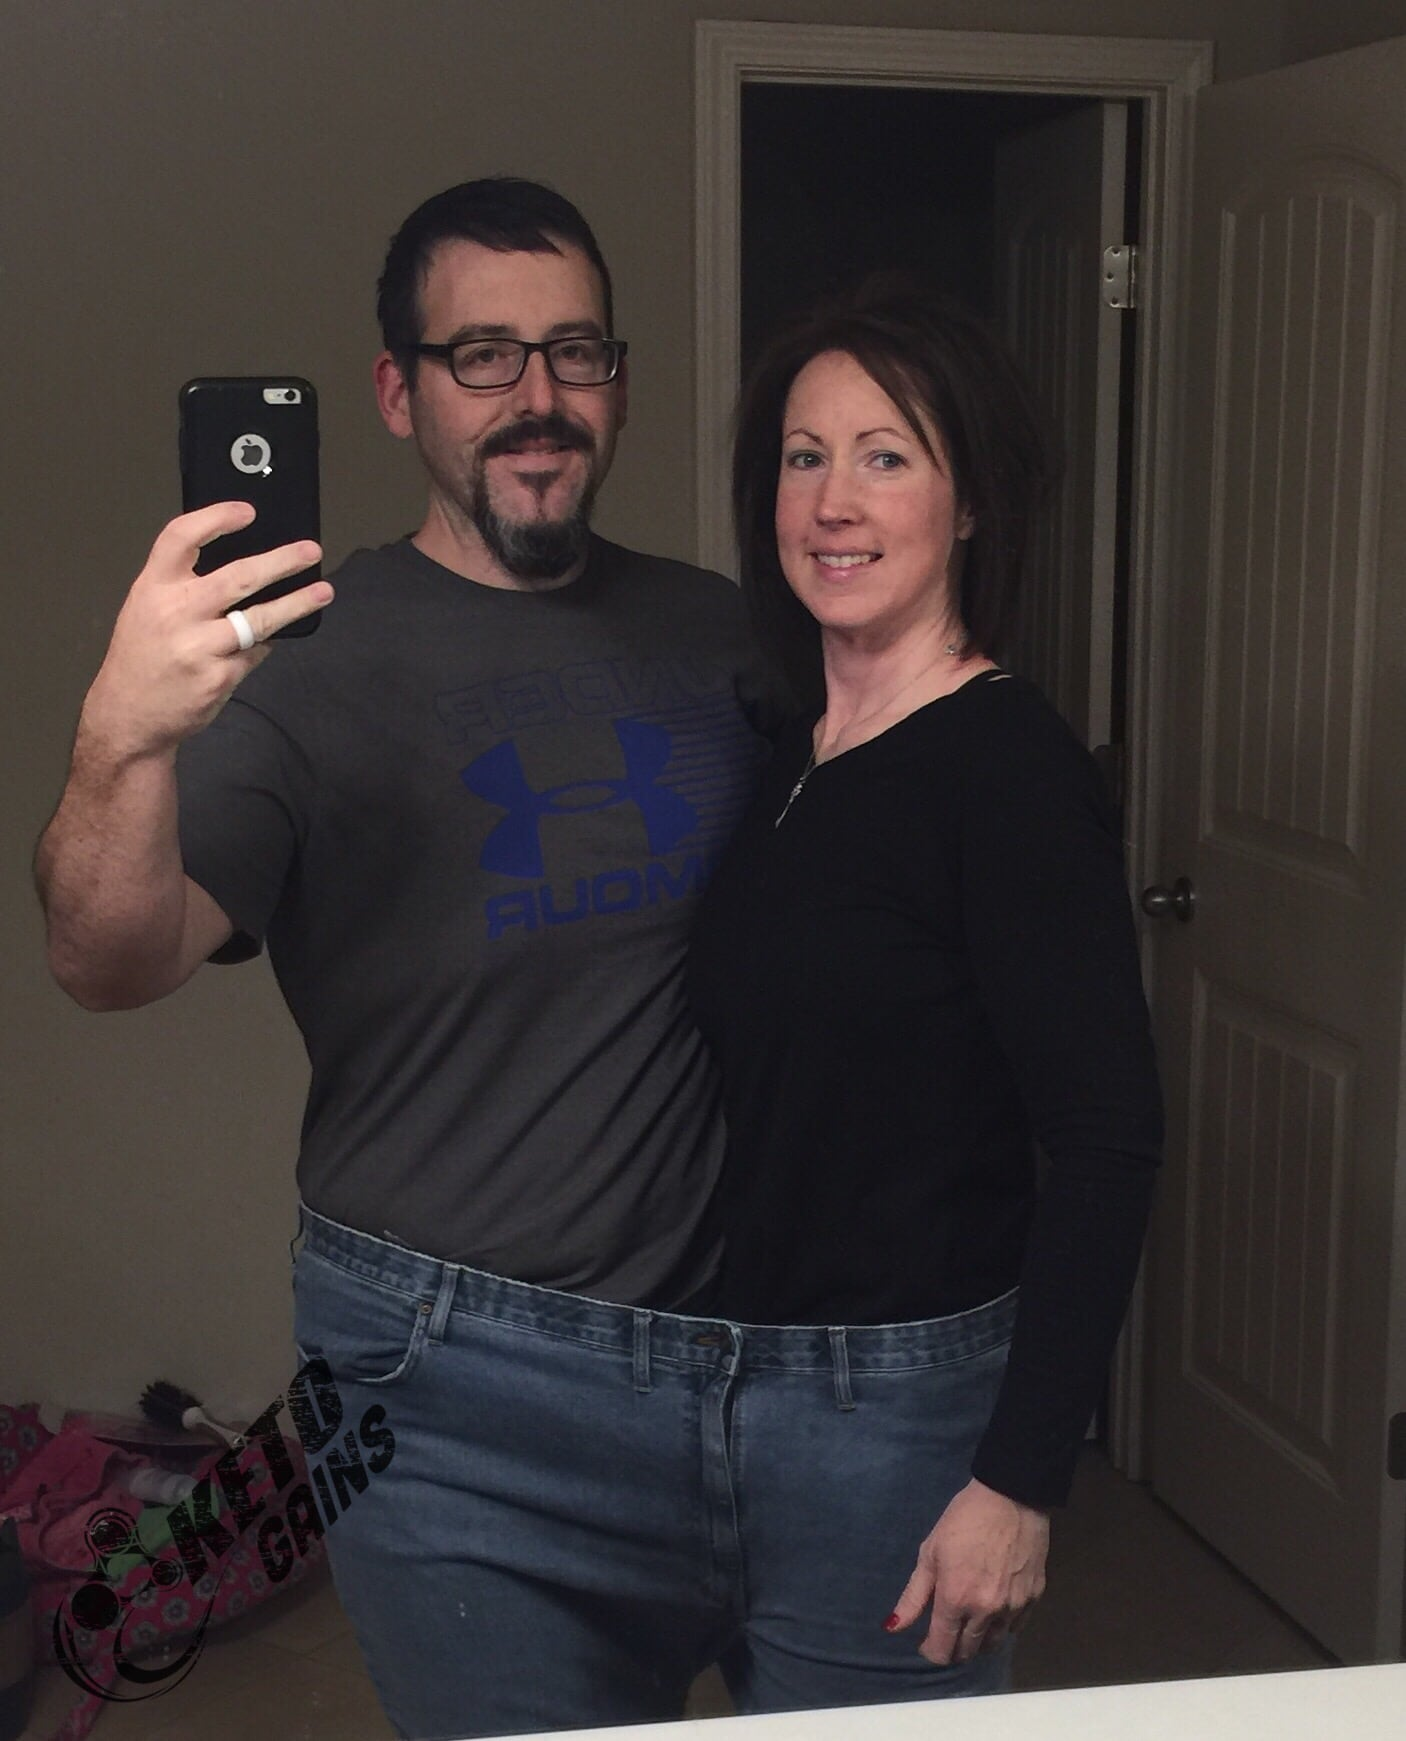 EP 49: Tyler Cartwright of Ketogains - 288 LBS LOST with KETOGENIC DIET and LIFESTYLE. From ...